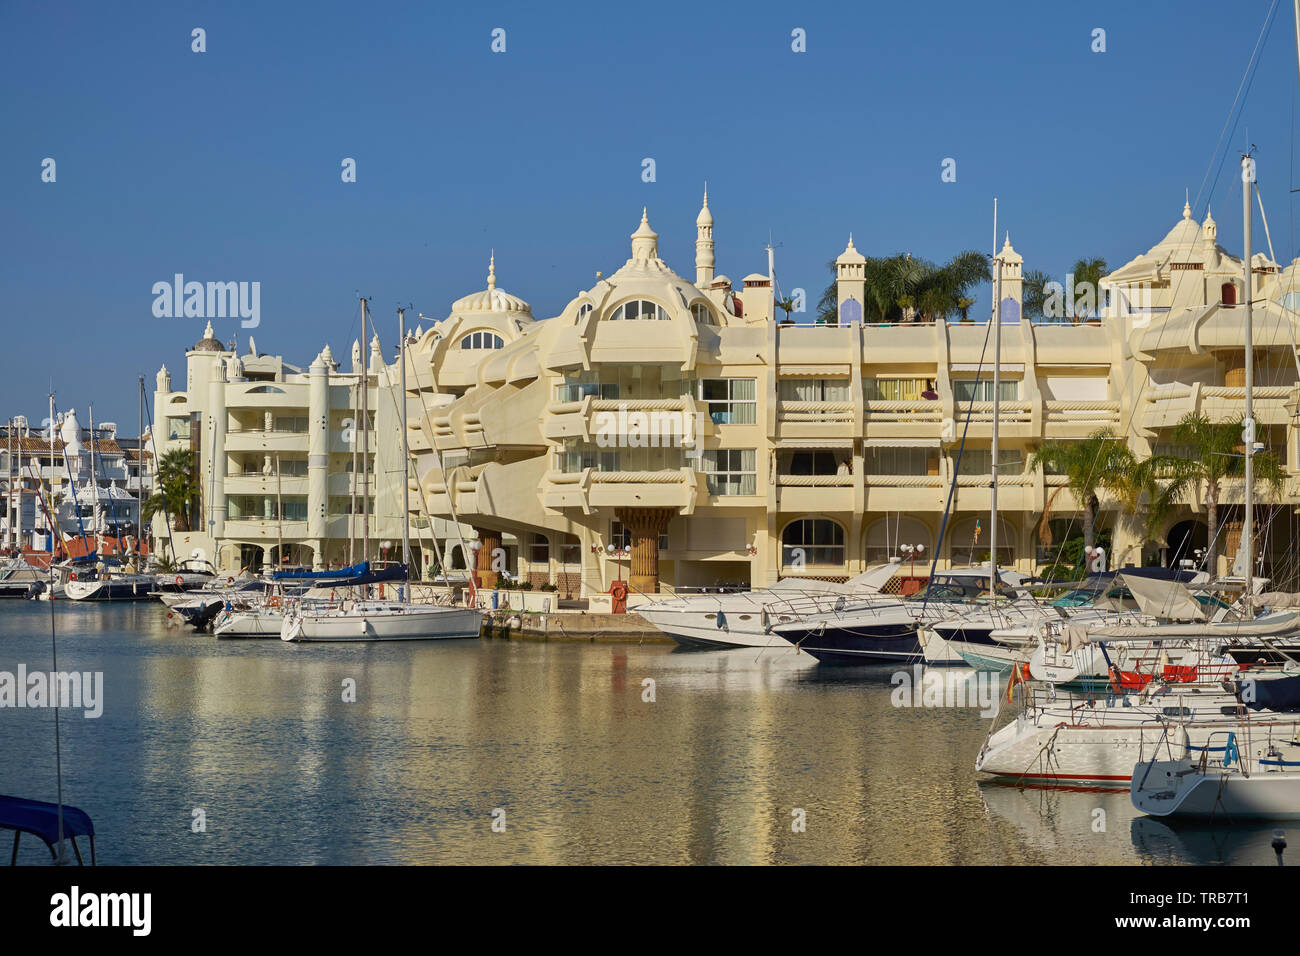 Puerto Marina yacht harbour. Benalmádena, Málaga province, Andalusia, Spain. Stock Photo